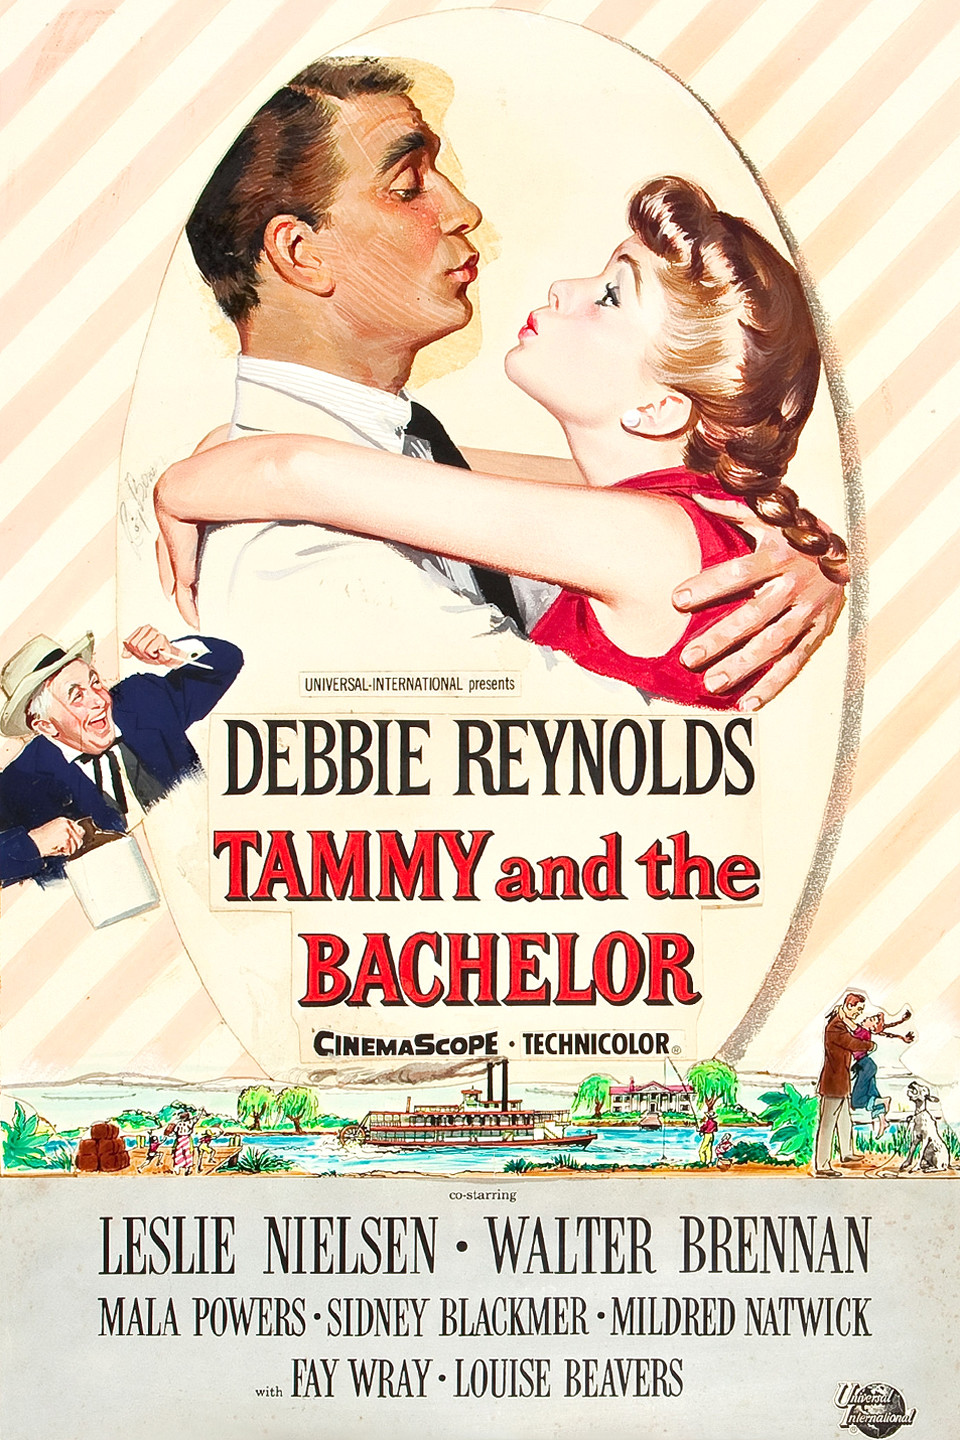 USA NEW Tammy and the Bachelor Movie POSTER 27 x 40 Debbie Reynolds A LICENSED